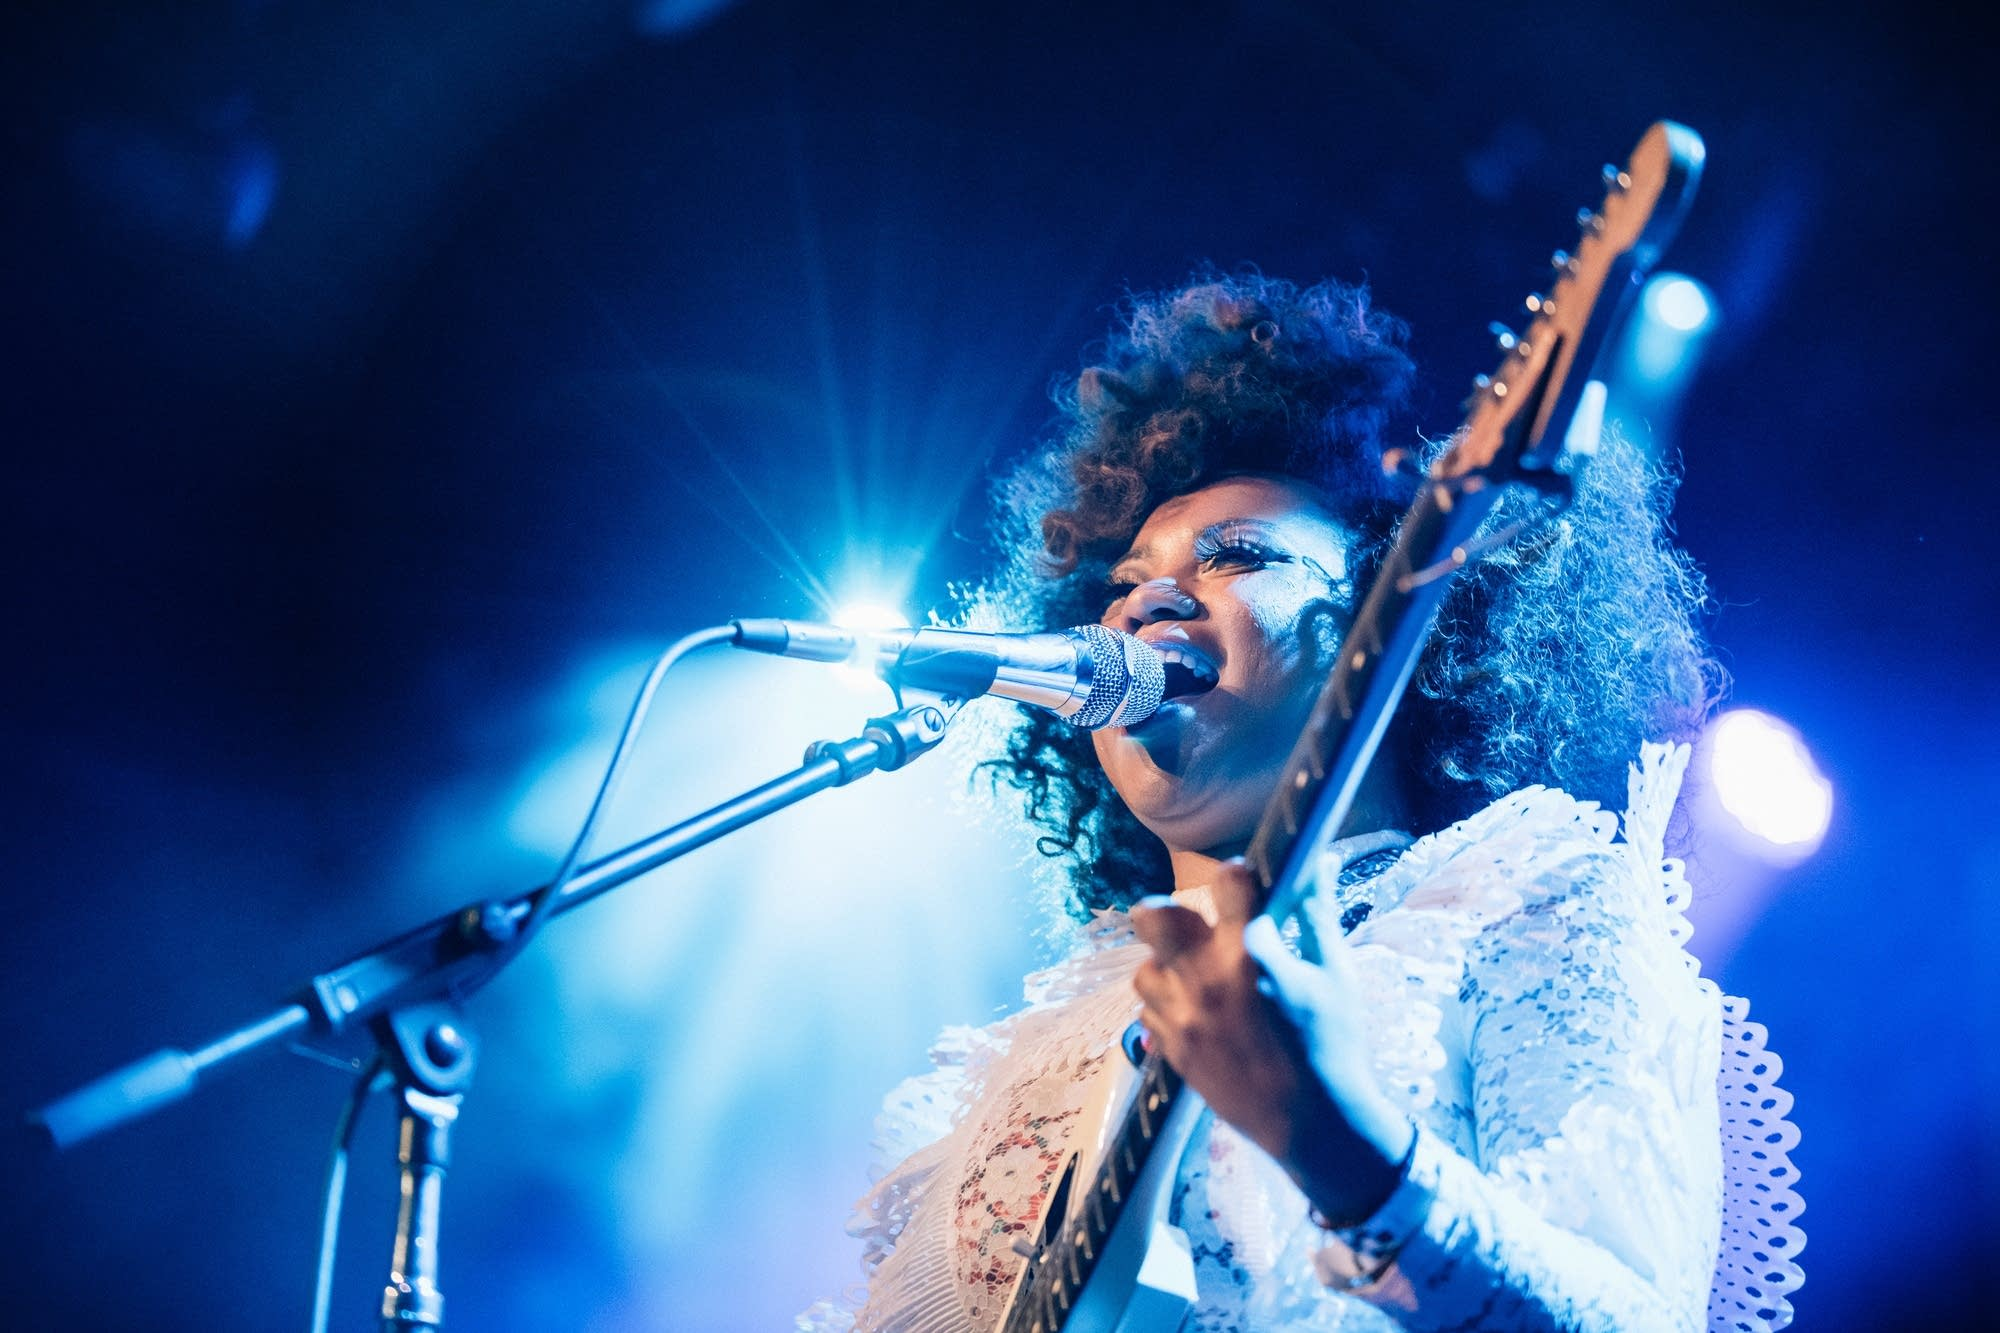 Seratones perform at The Current's 15th Anniversary Party